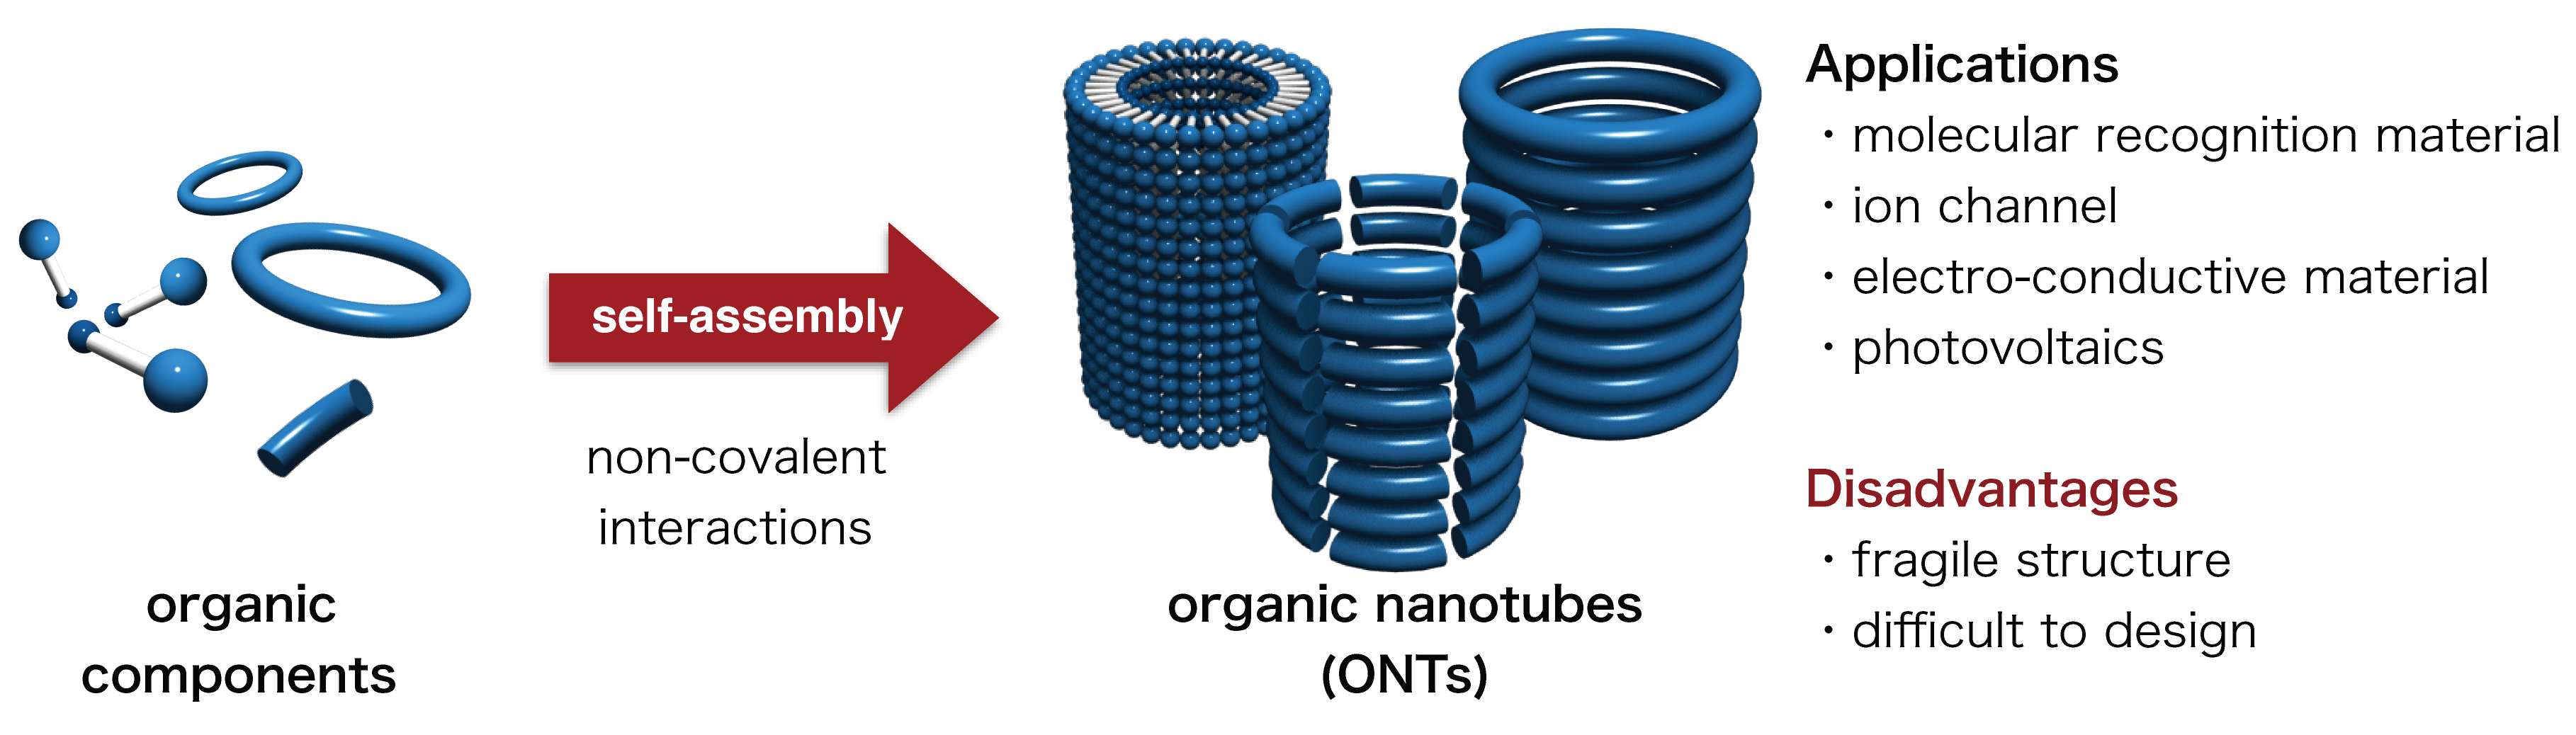 Figure1_ONT.png